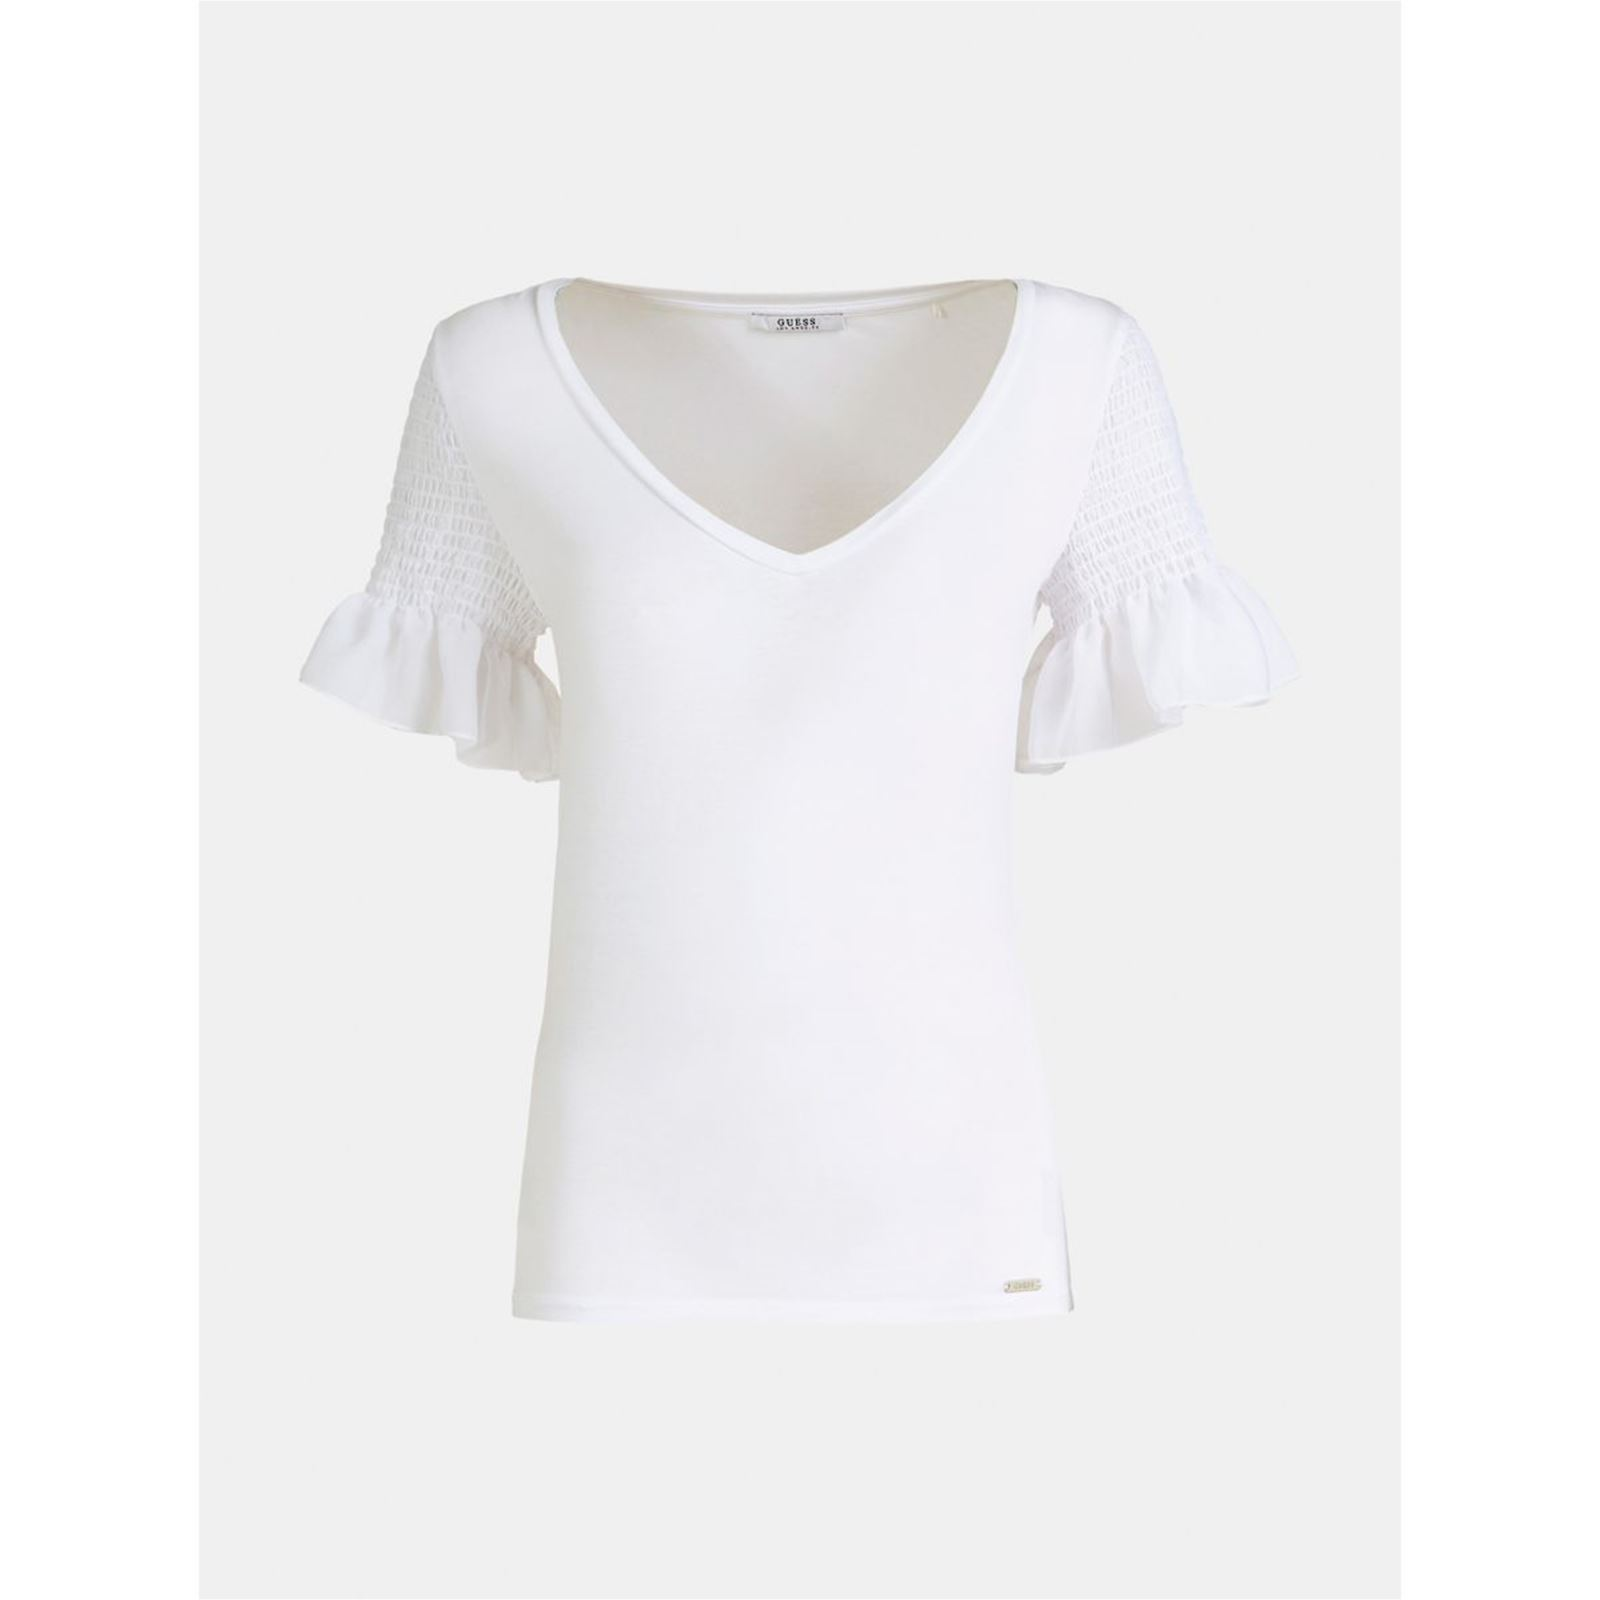 Guess Top VolantBlanc Femme V Guess Guess Top Top VolantBlanc Femme VolantBlanc V 6bfyY7g